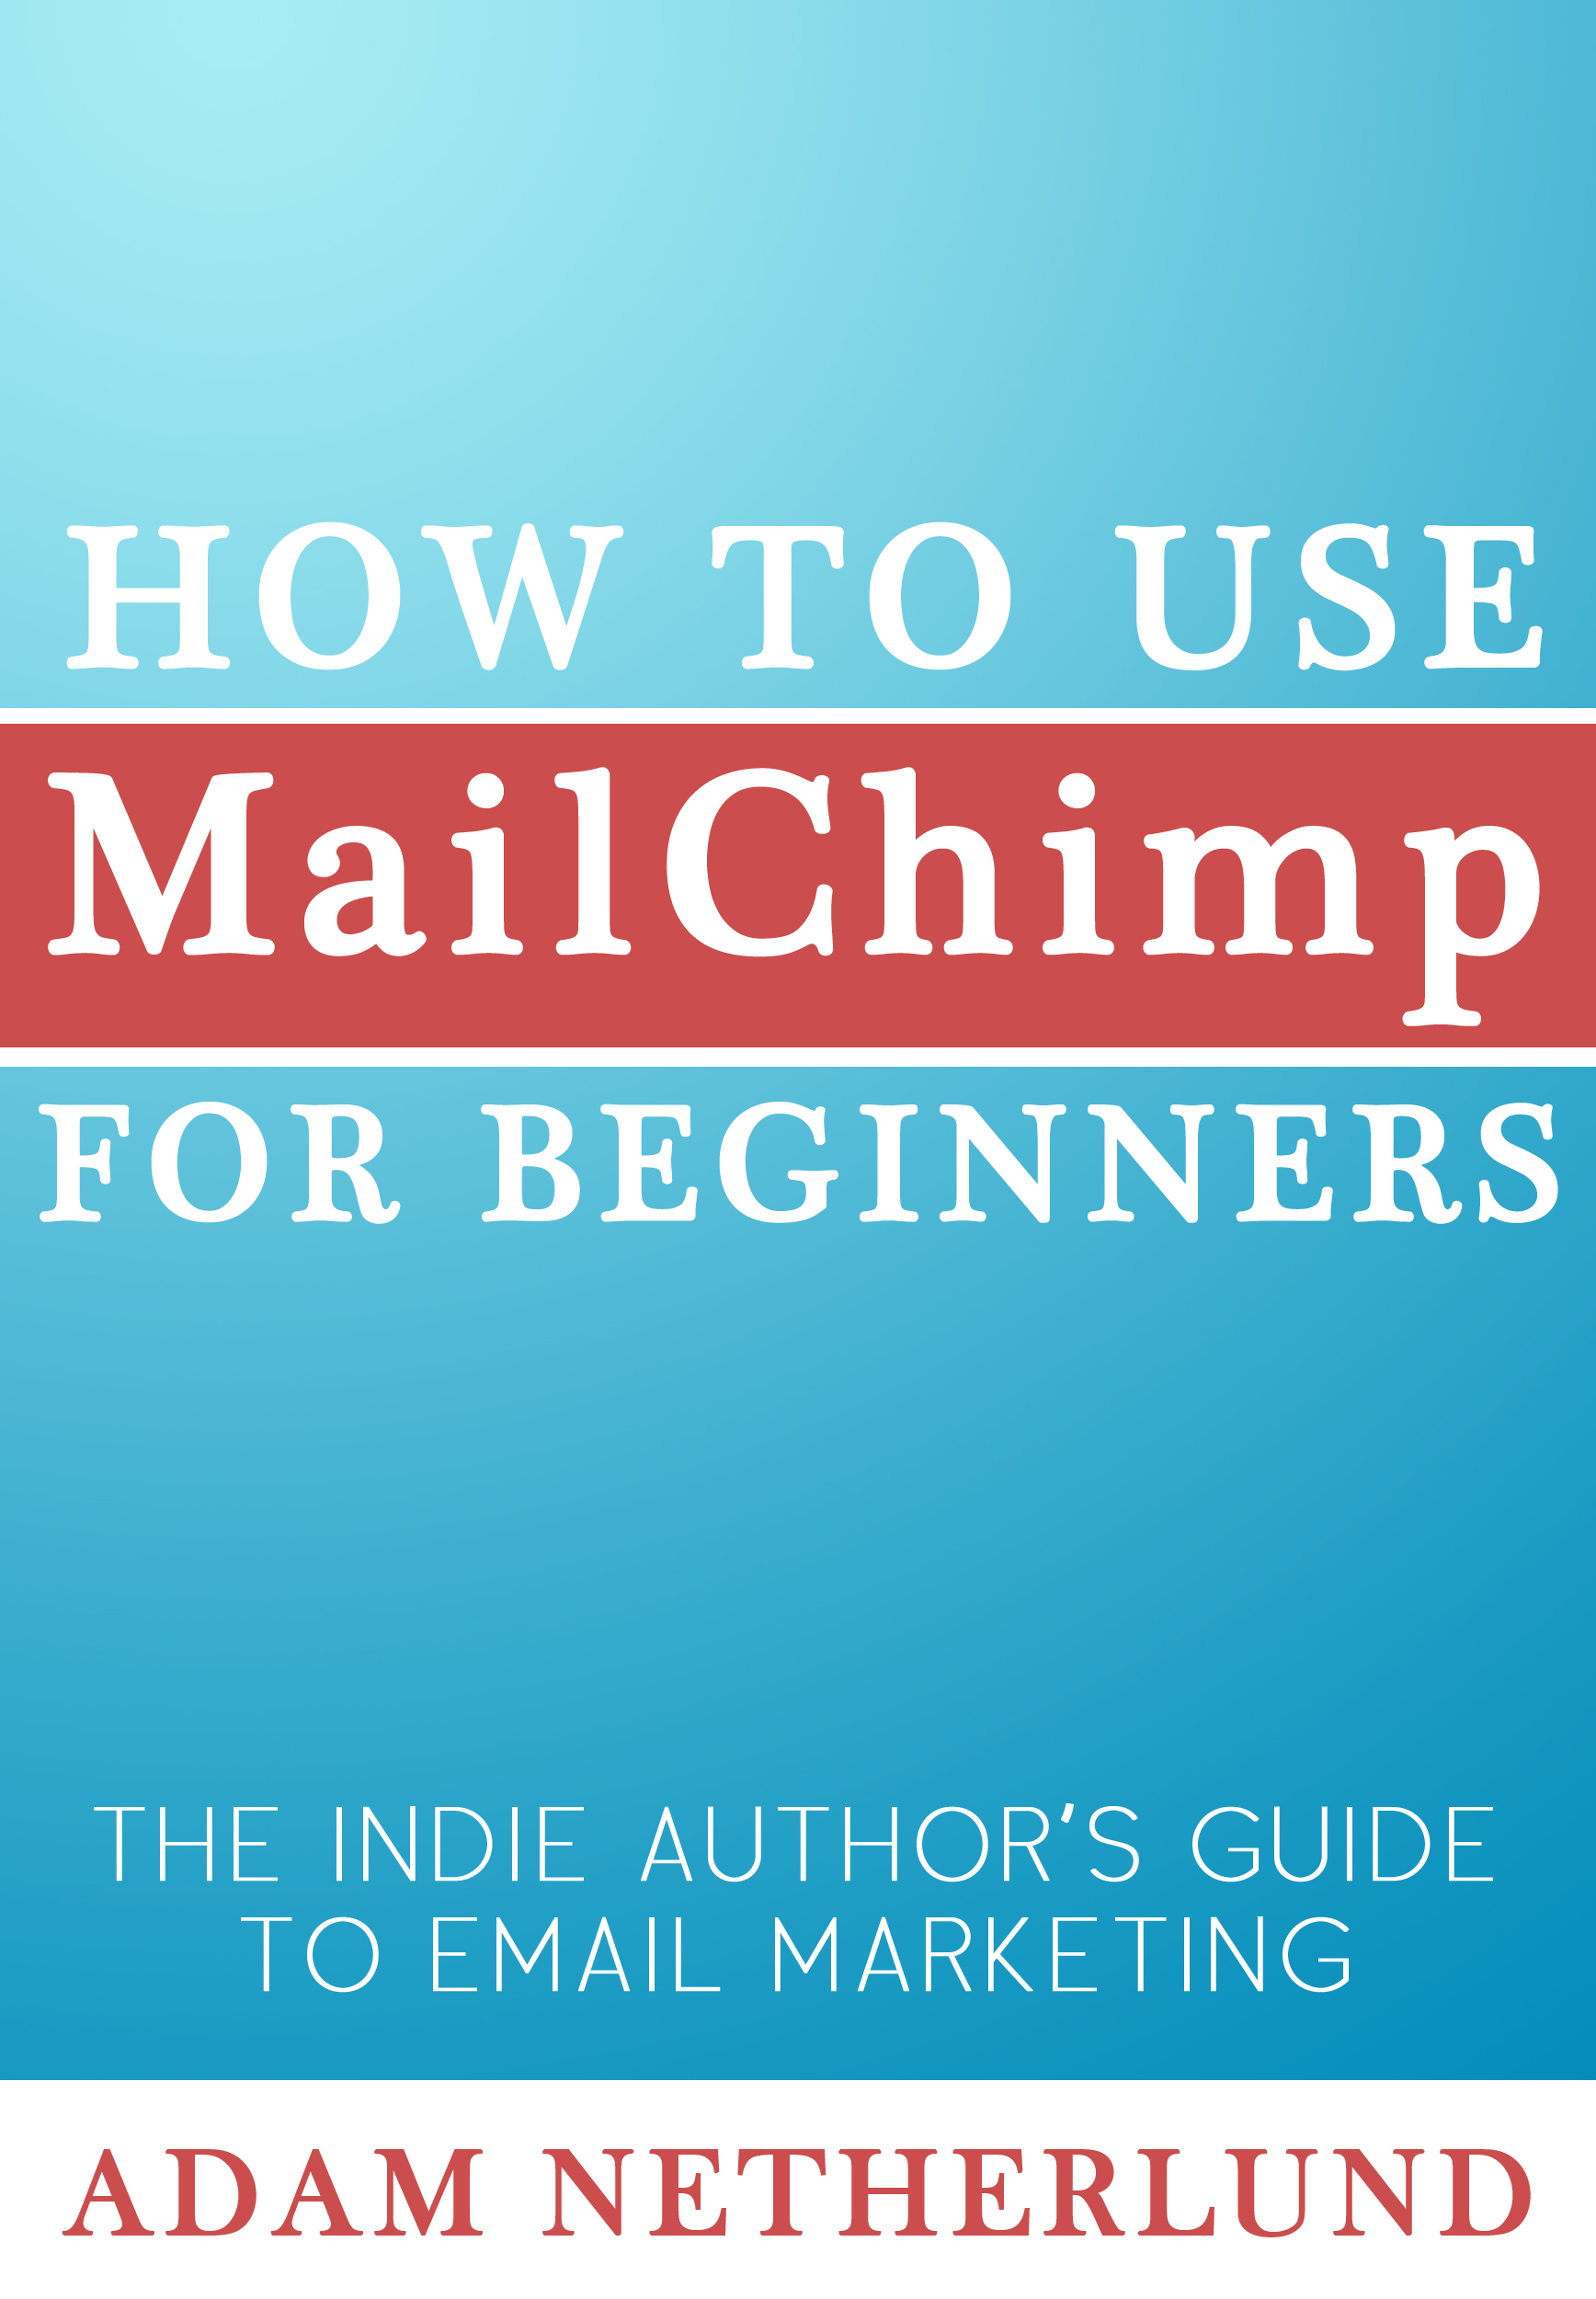 How to use mailchimp for beginners: the indie author's guide to email marketing